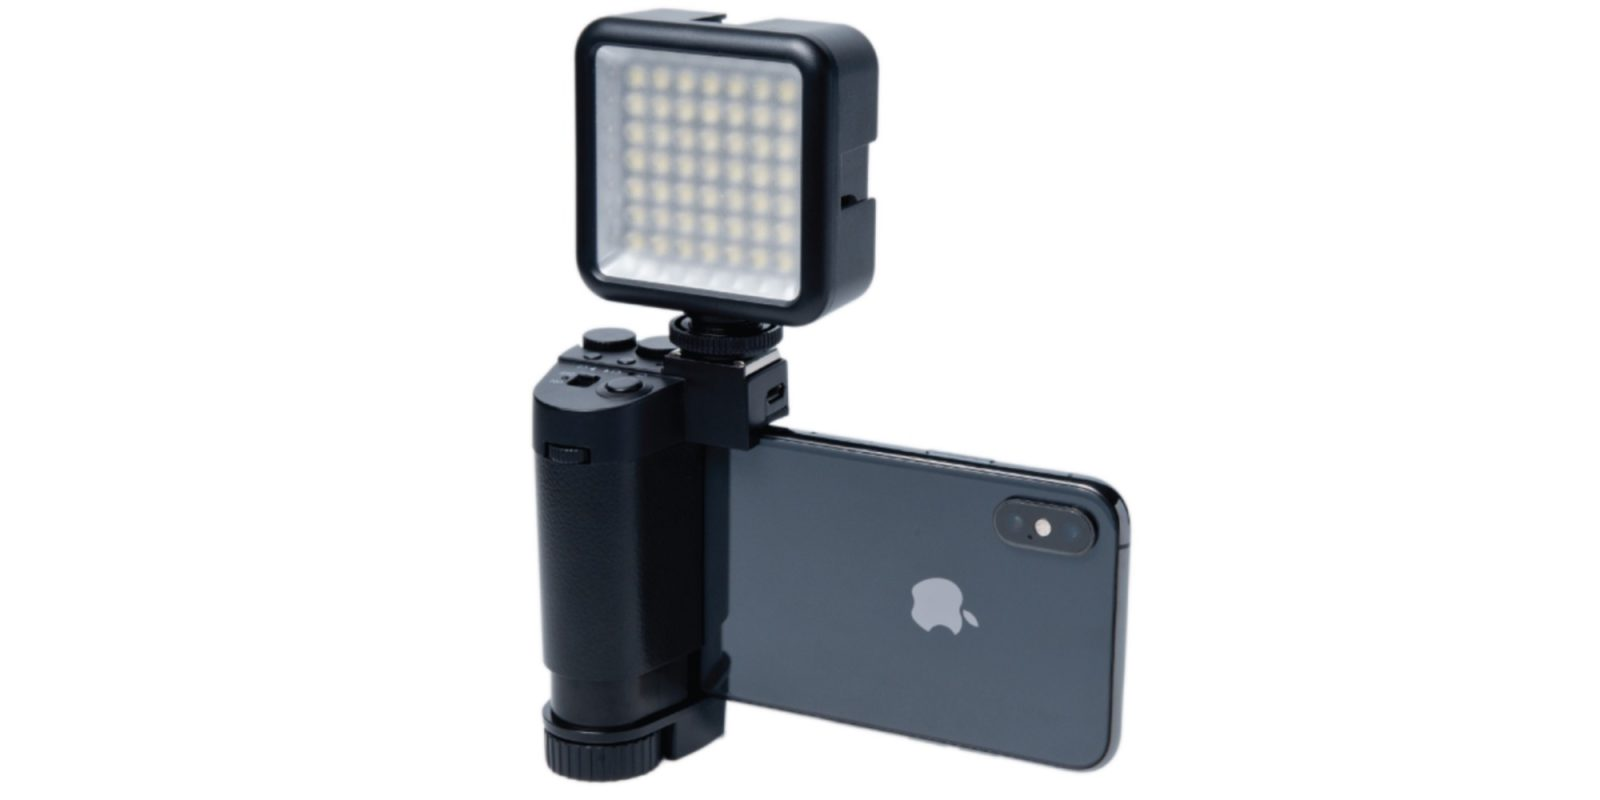 Upgrade your iPhone photography with the Ligtro Grip and Flash for $55 (Orig. $79)